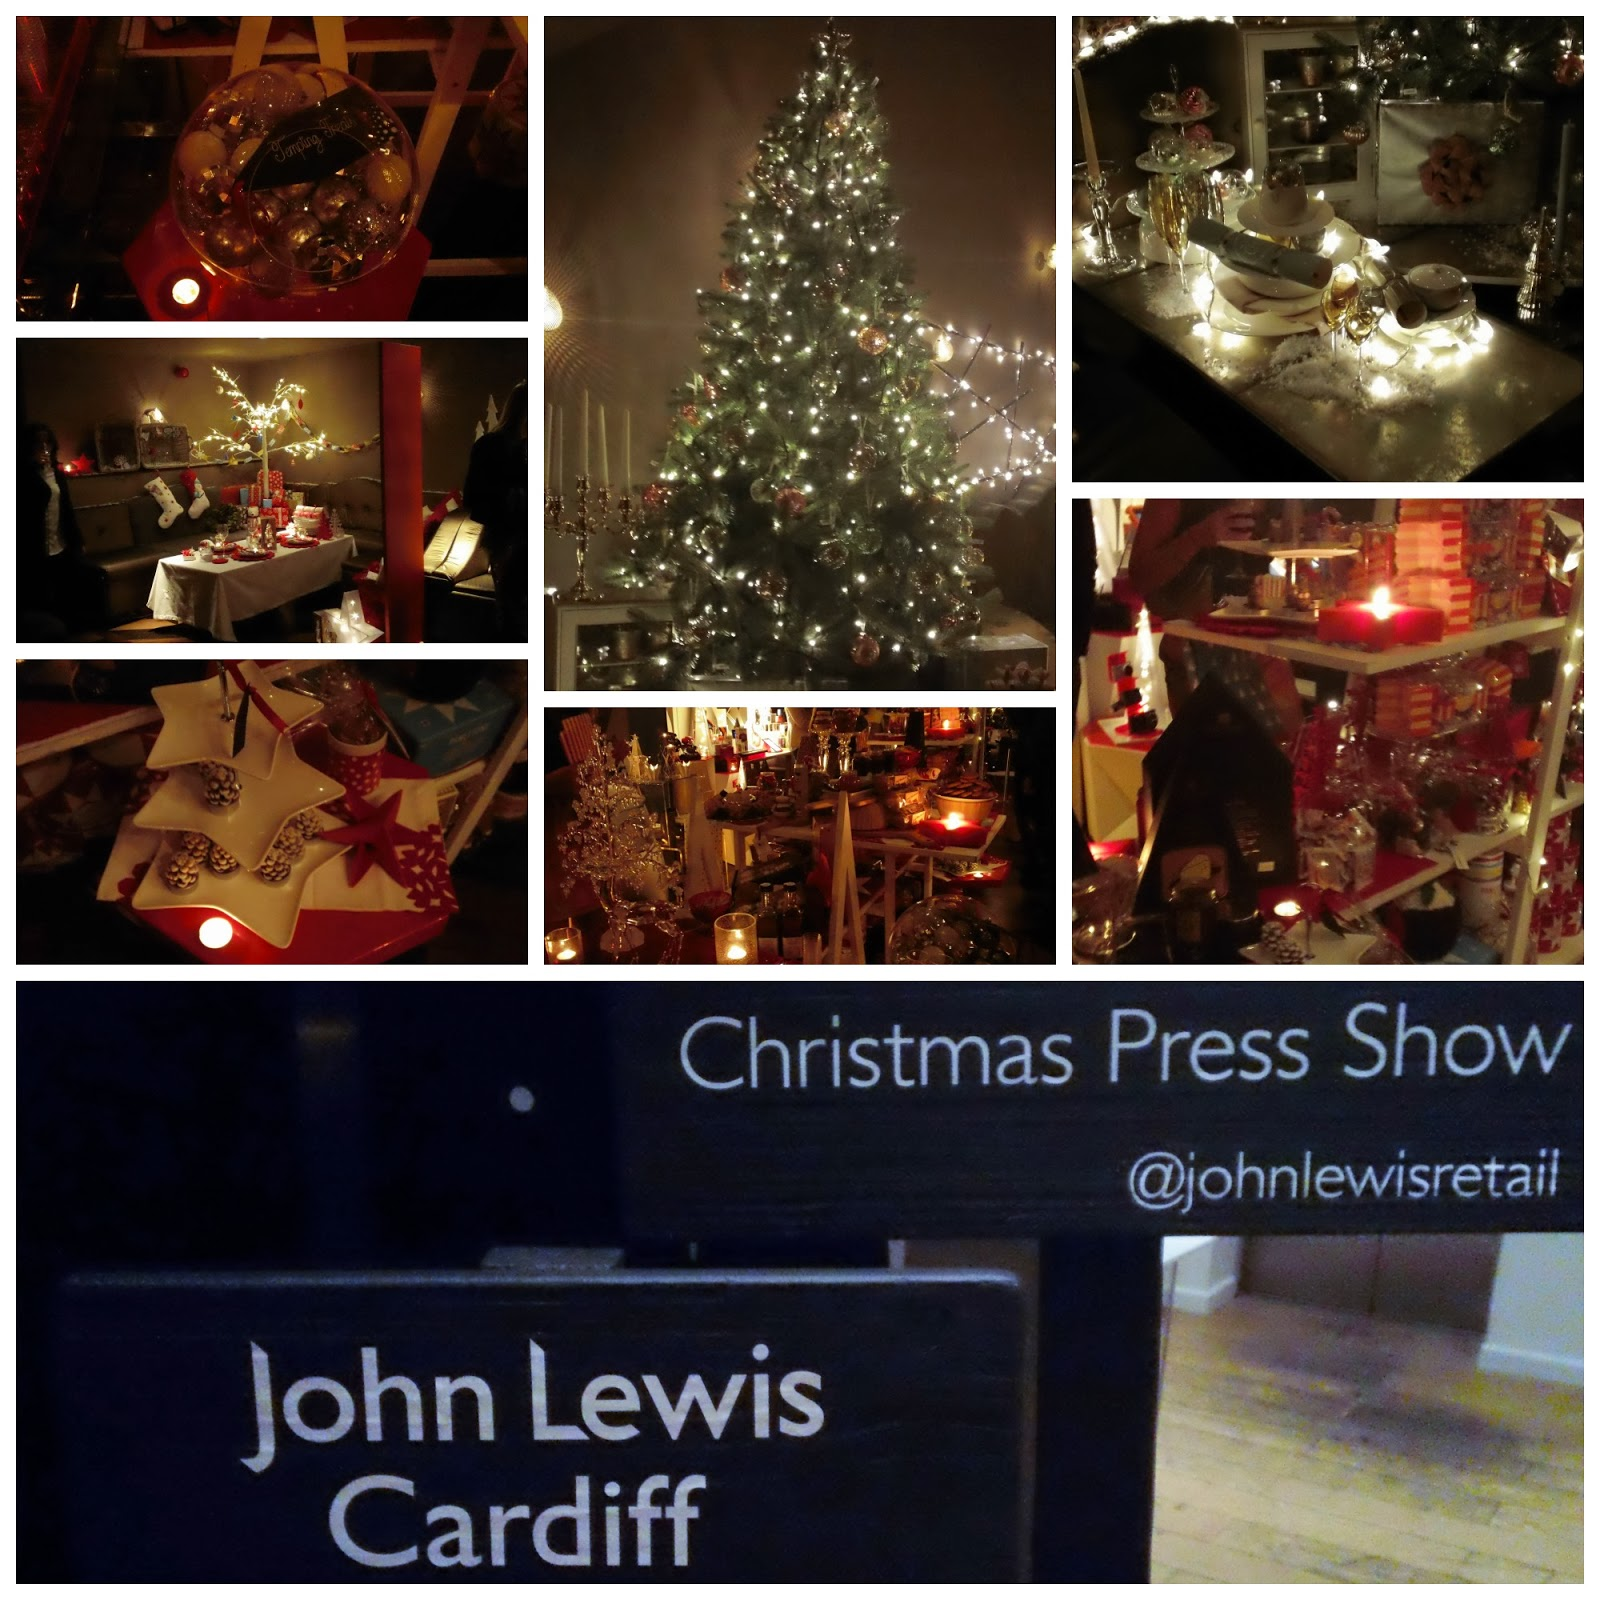 John Lewis Press Event, John Lewis Christmas, Kuku Club, Park Plaza Hotel Cardiff